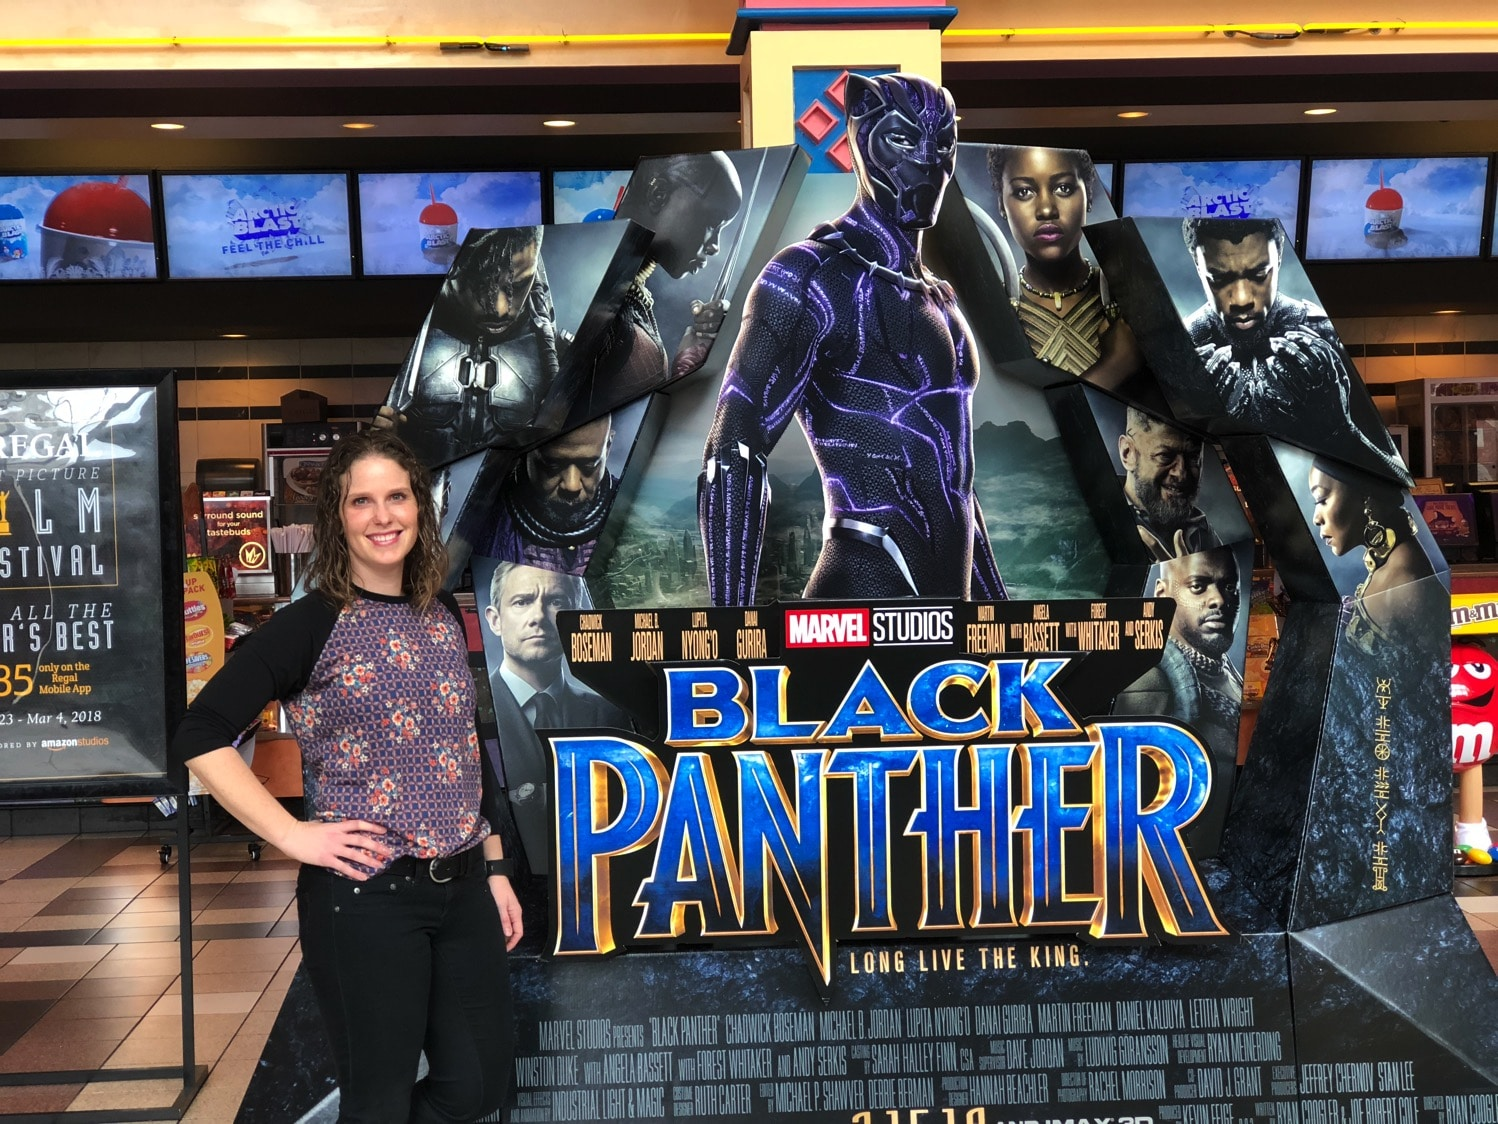 Black Panther Screening